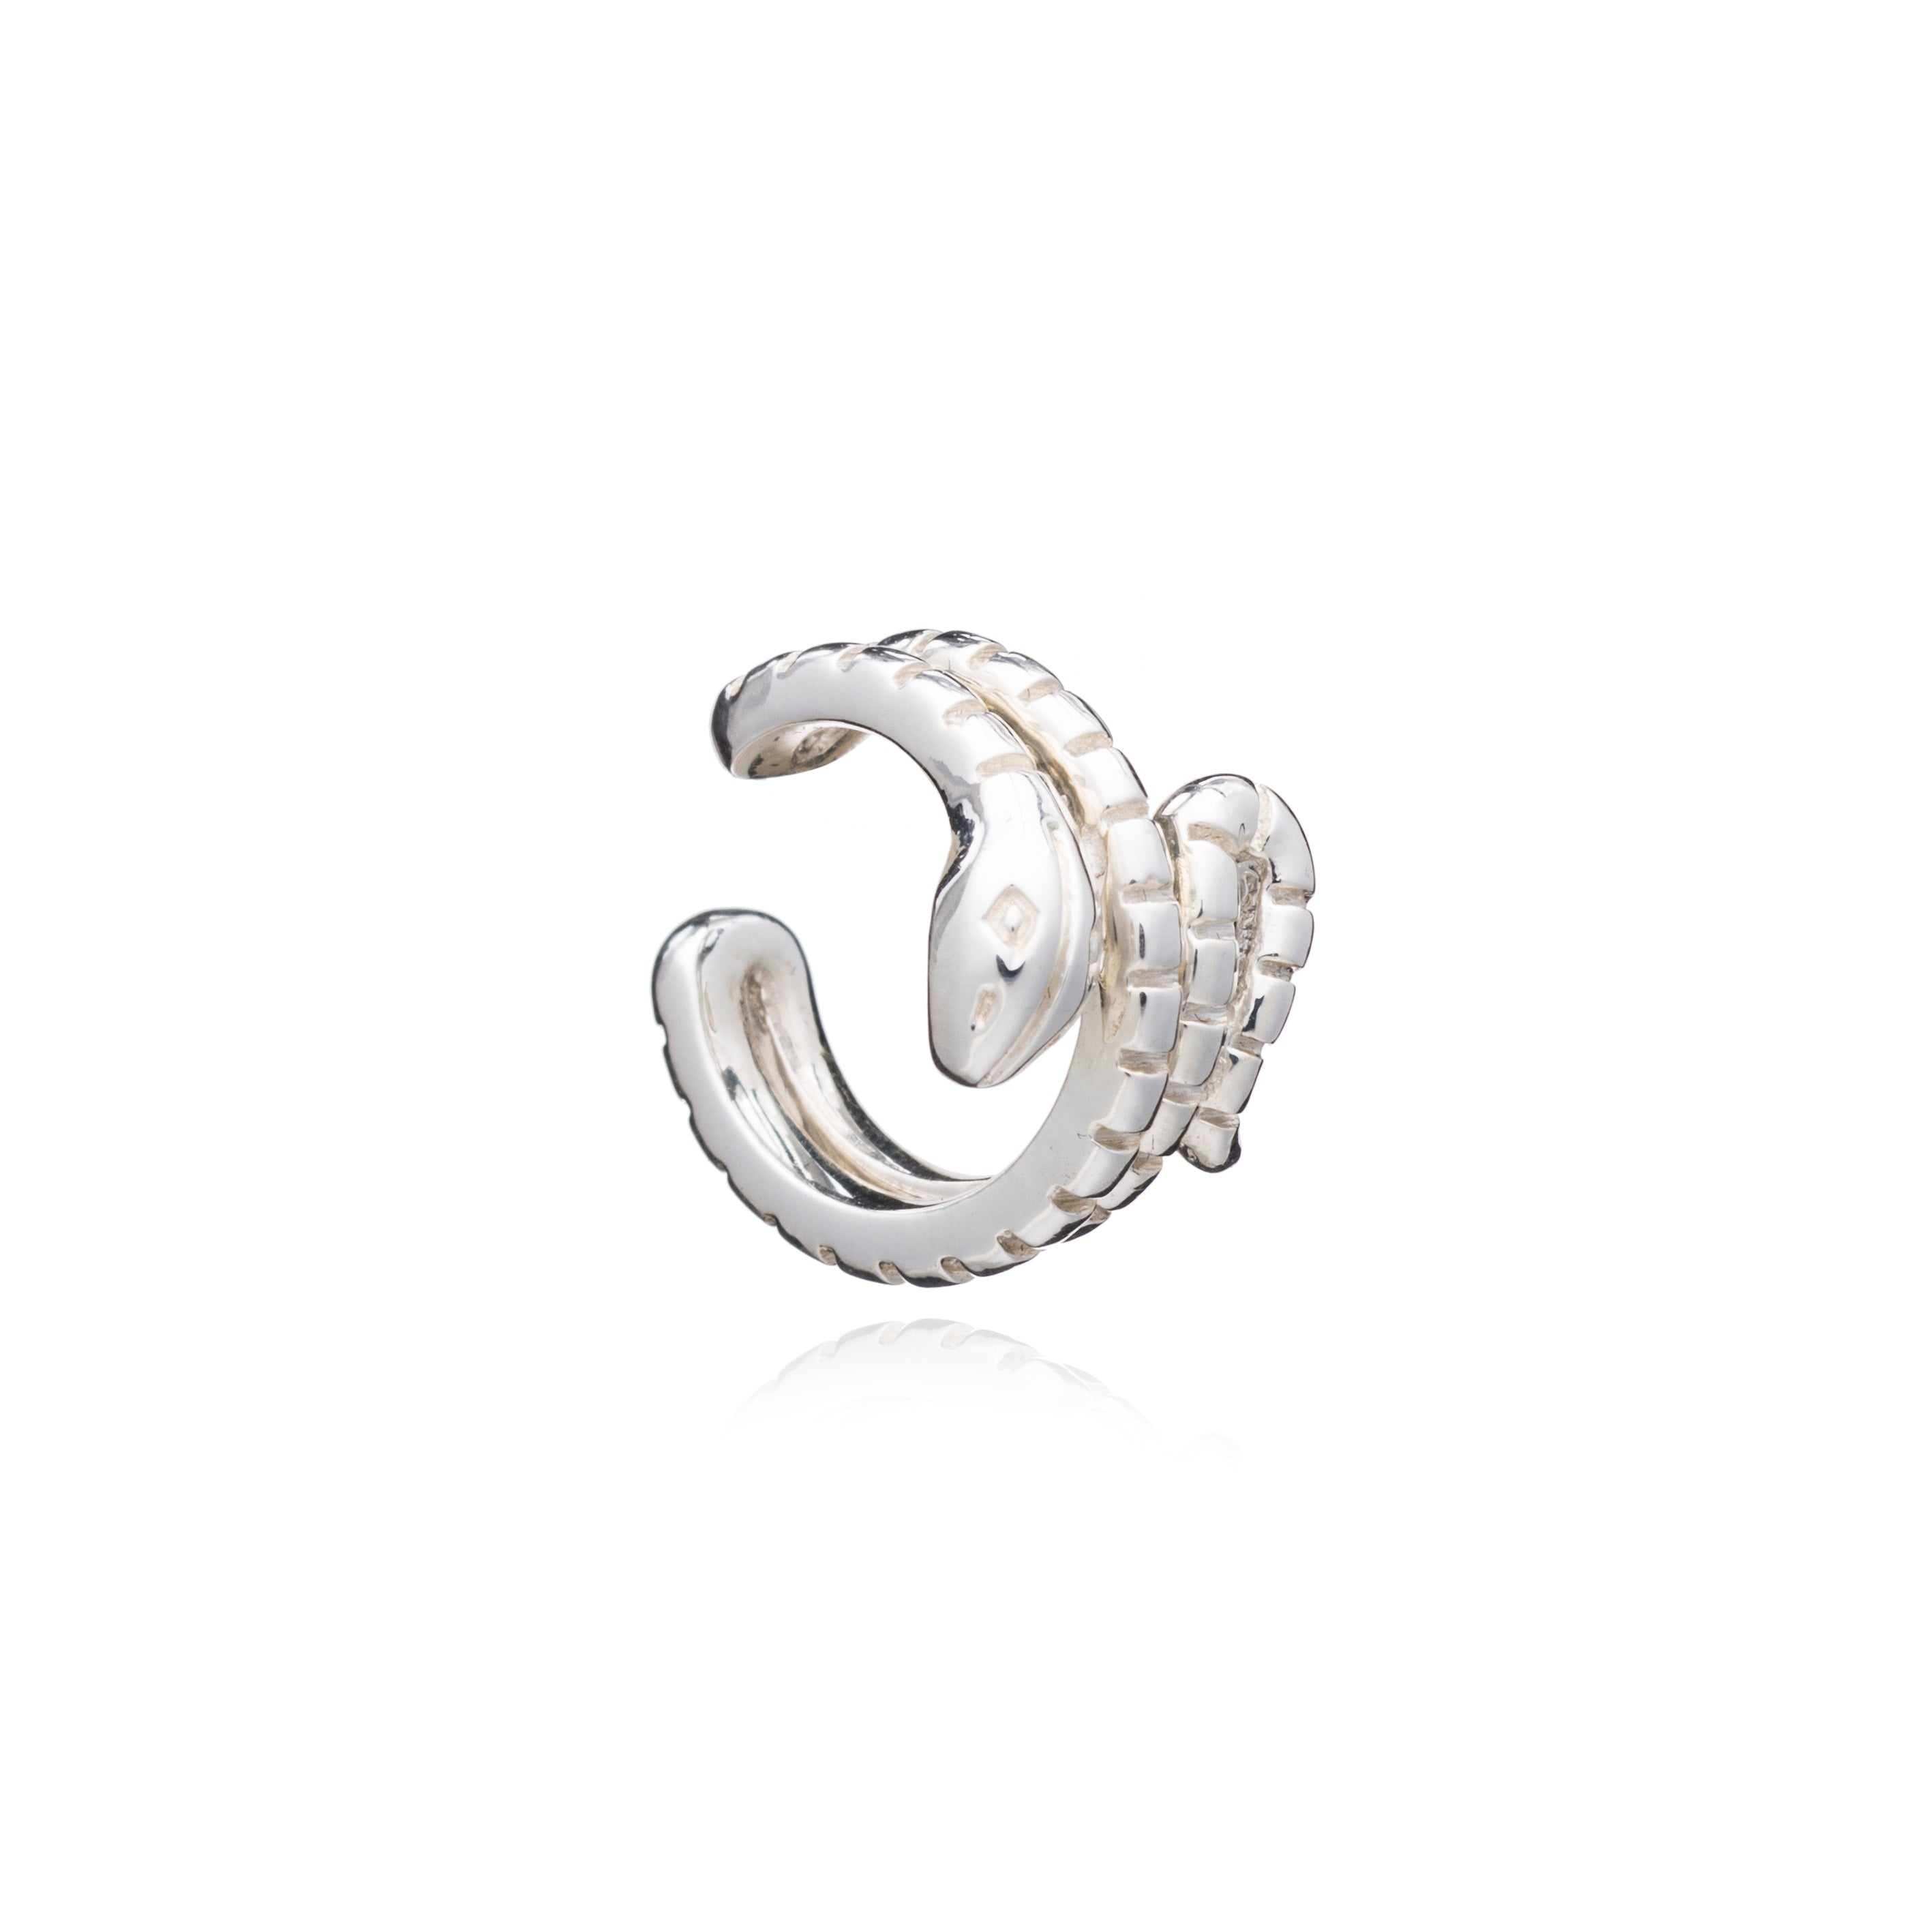 Statement Snake Ear Cuff - Silver